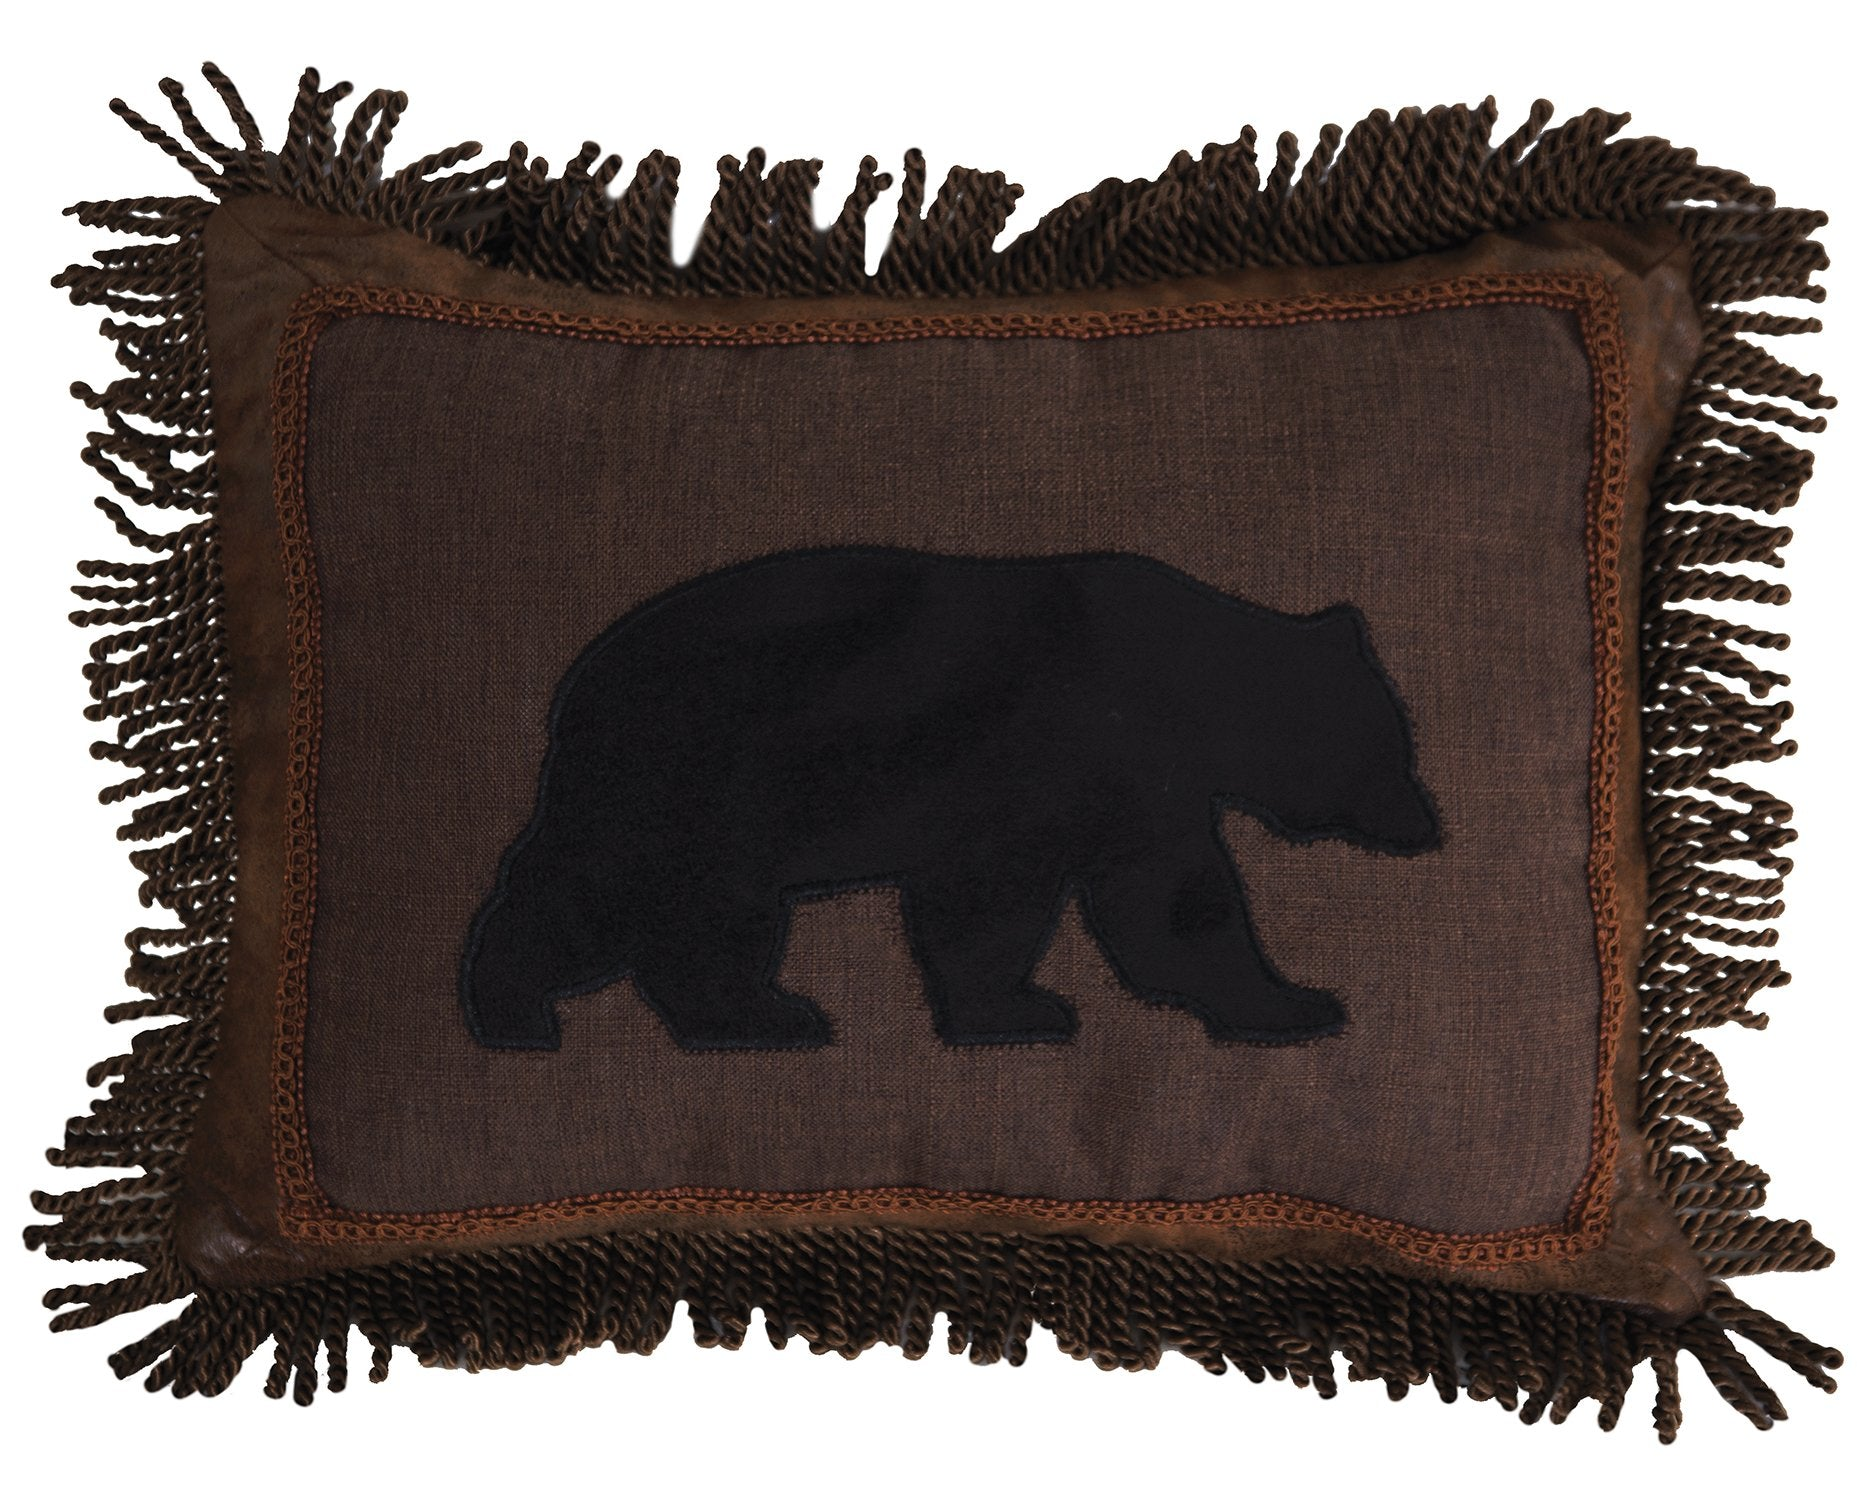 Black Bear Fringe Pillow Carstens - unique linens online